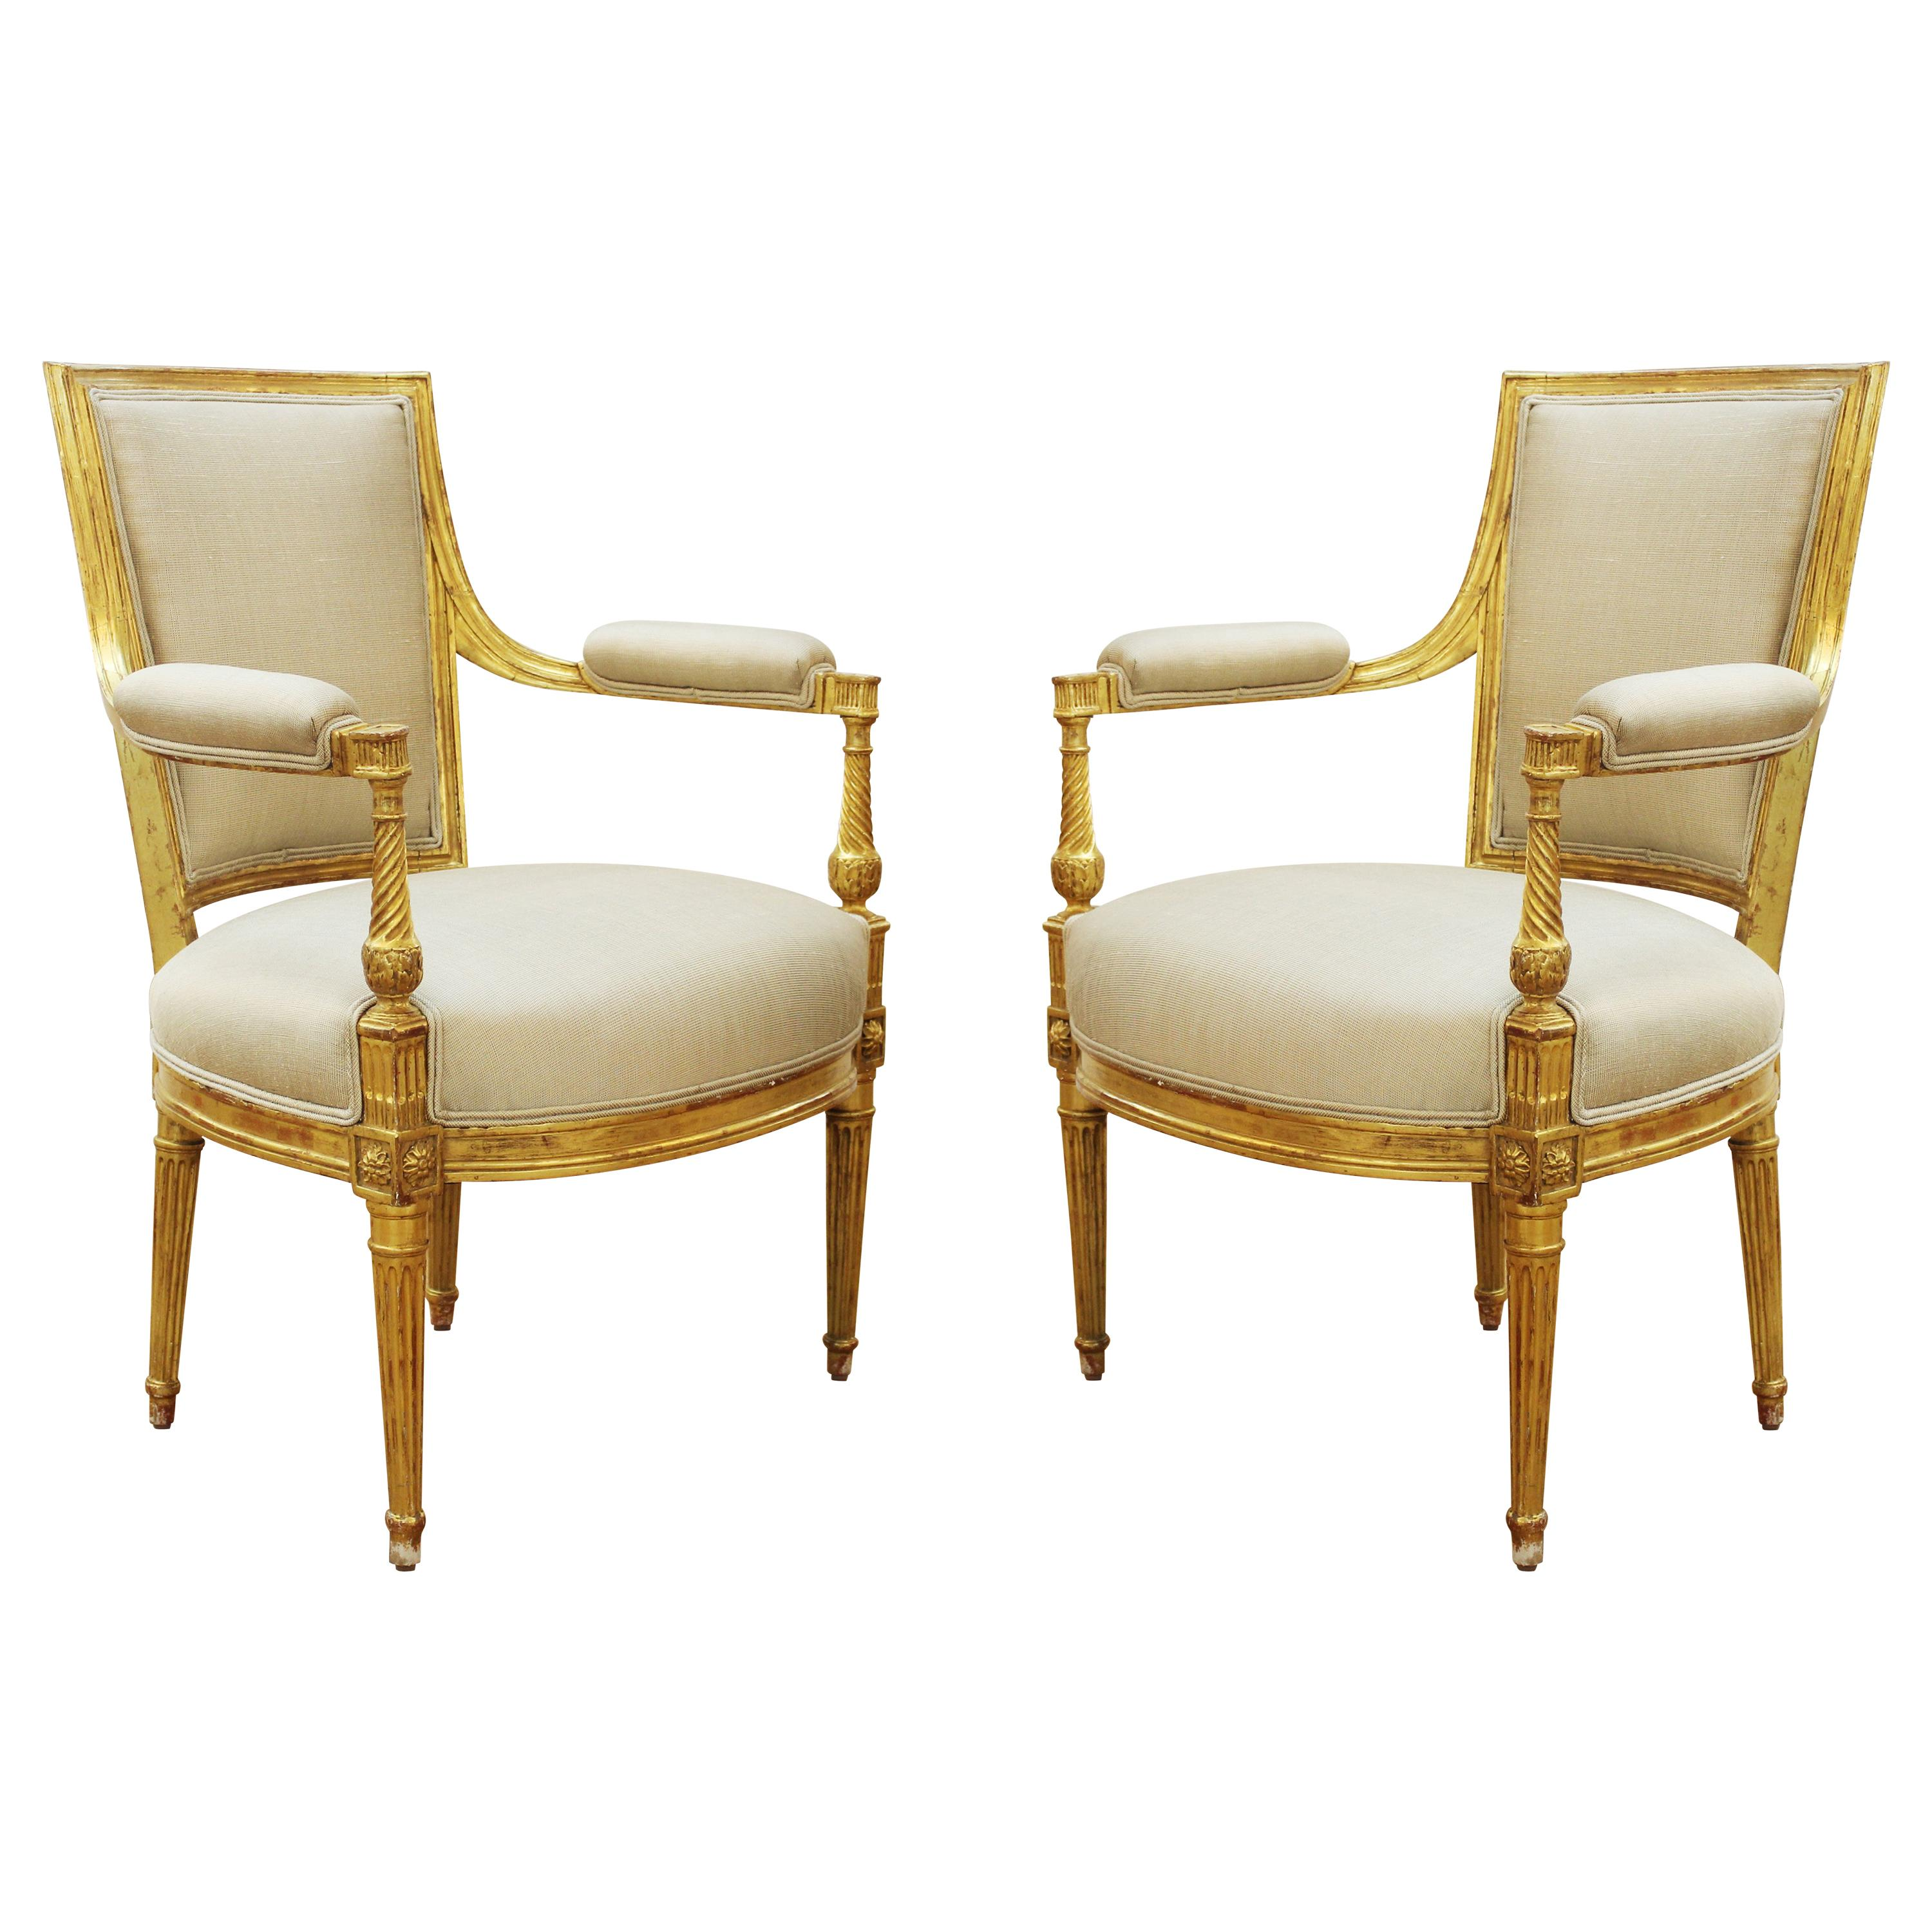 French Louis XVI Style Giltwood Upholstered Fauteuils